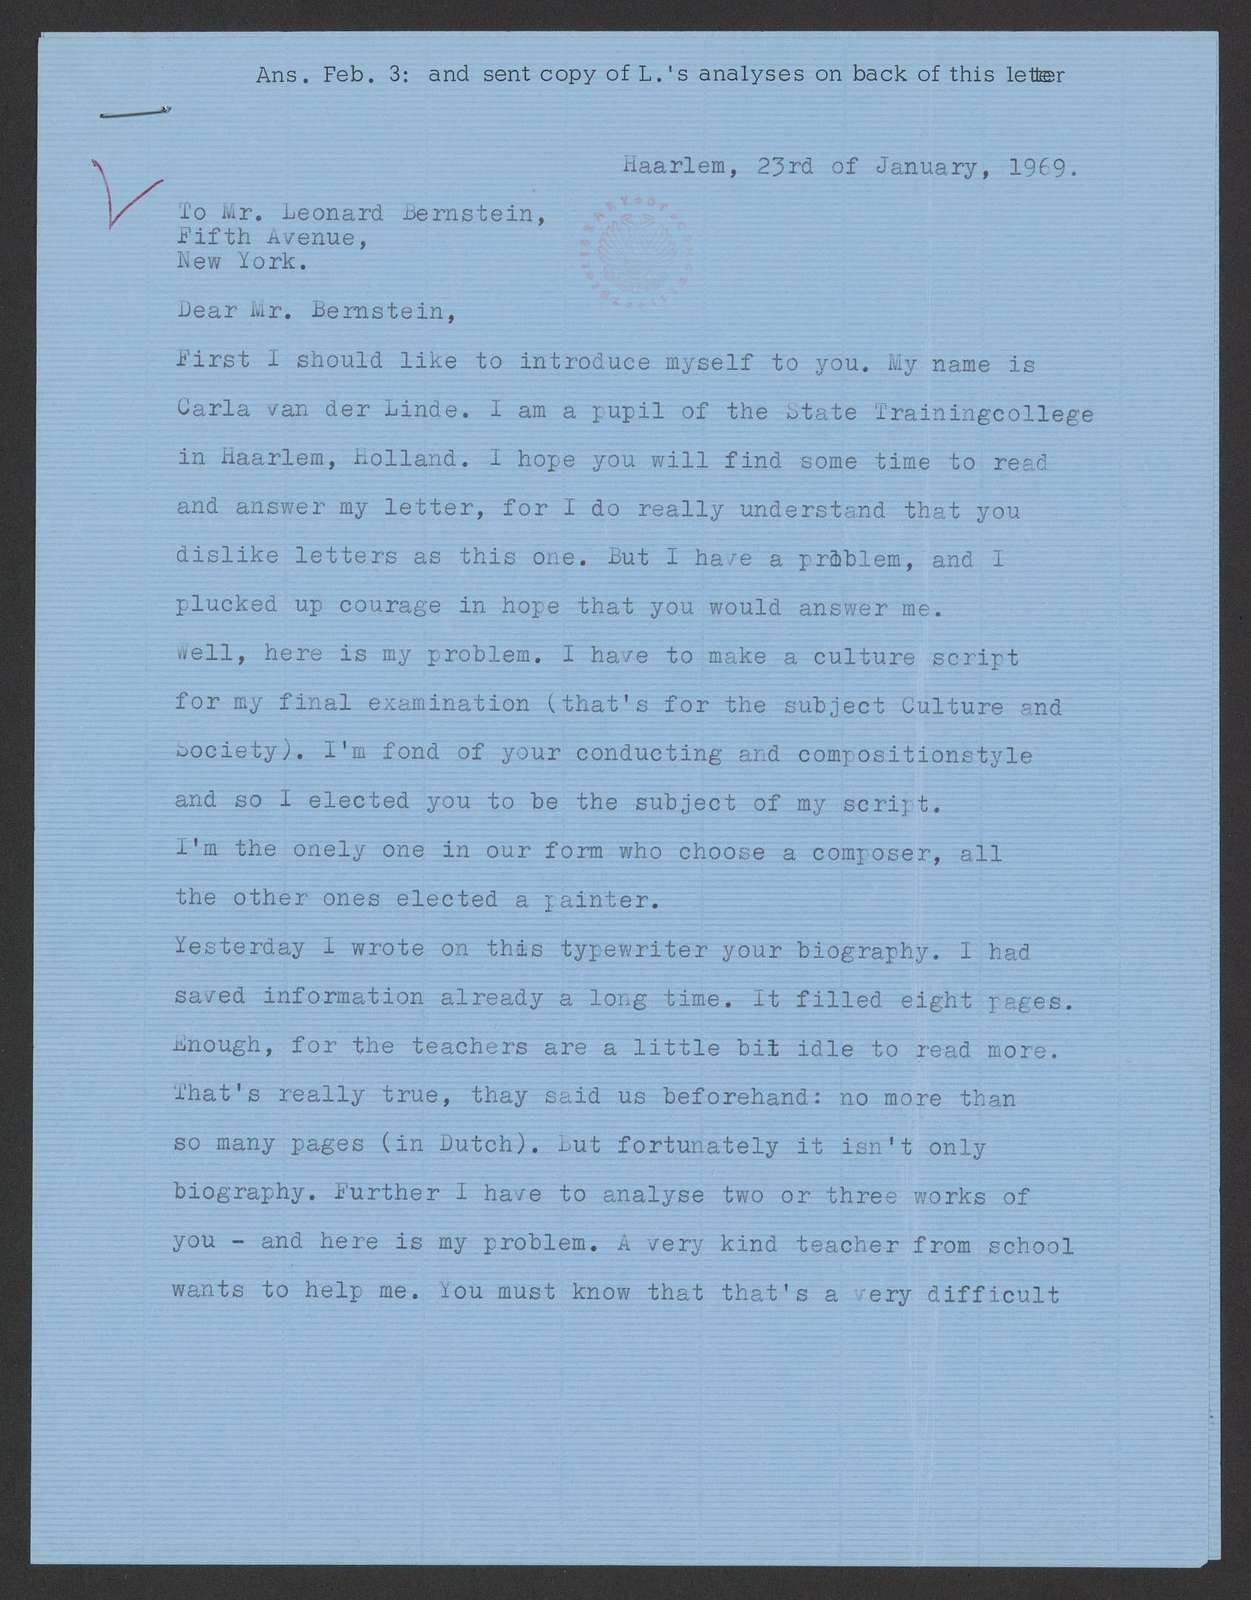 correspondence with a student in Holland re a leitmotif in West Side Story, 1969 Feb. 3